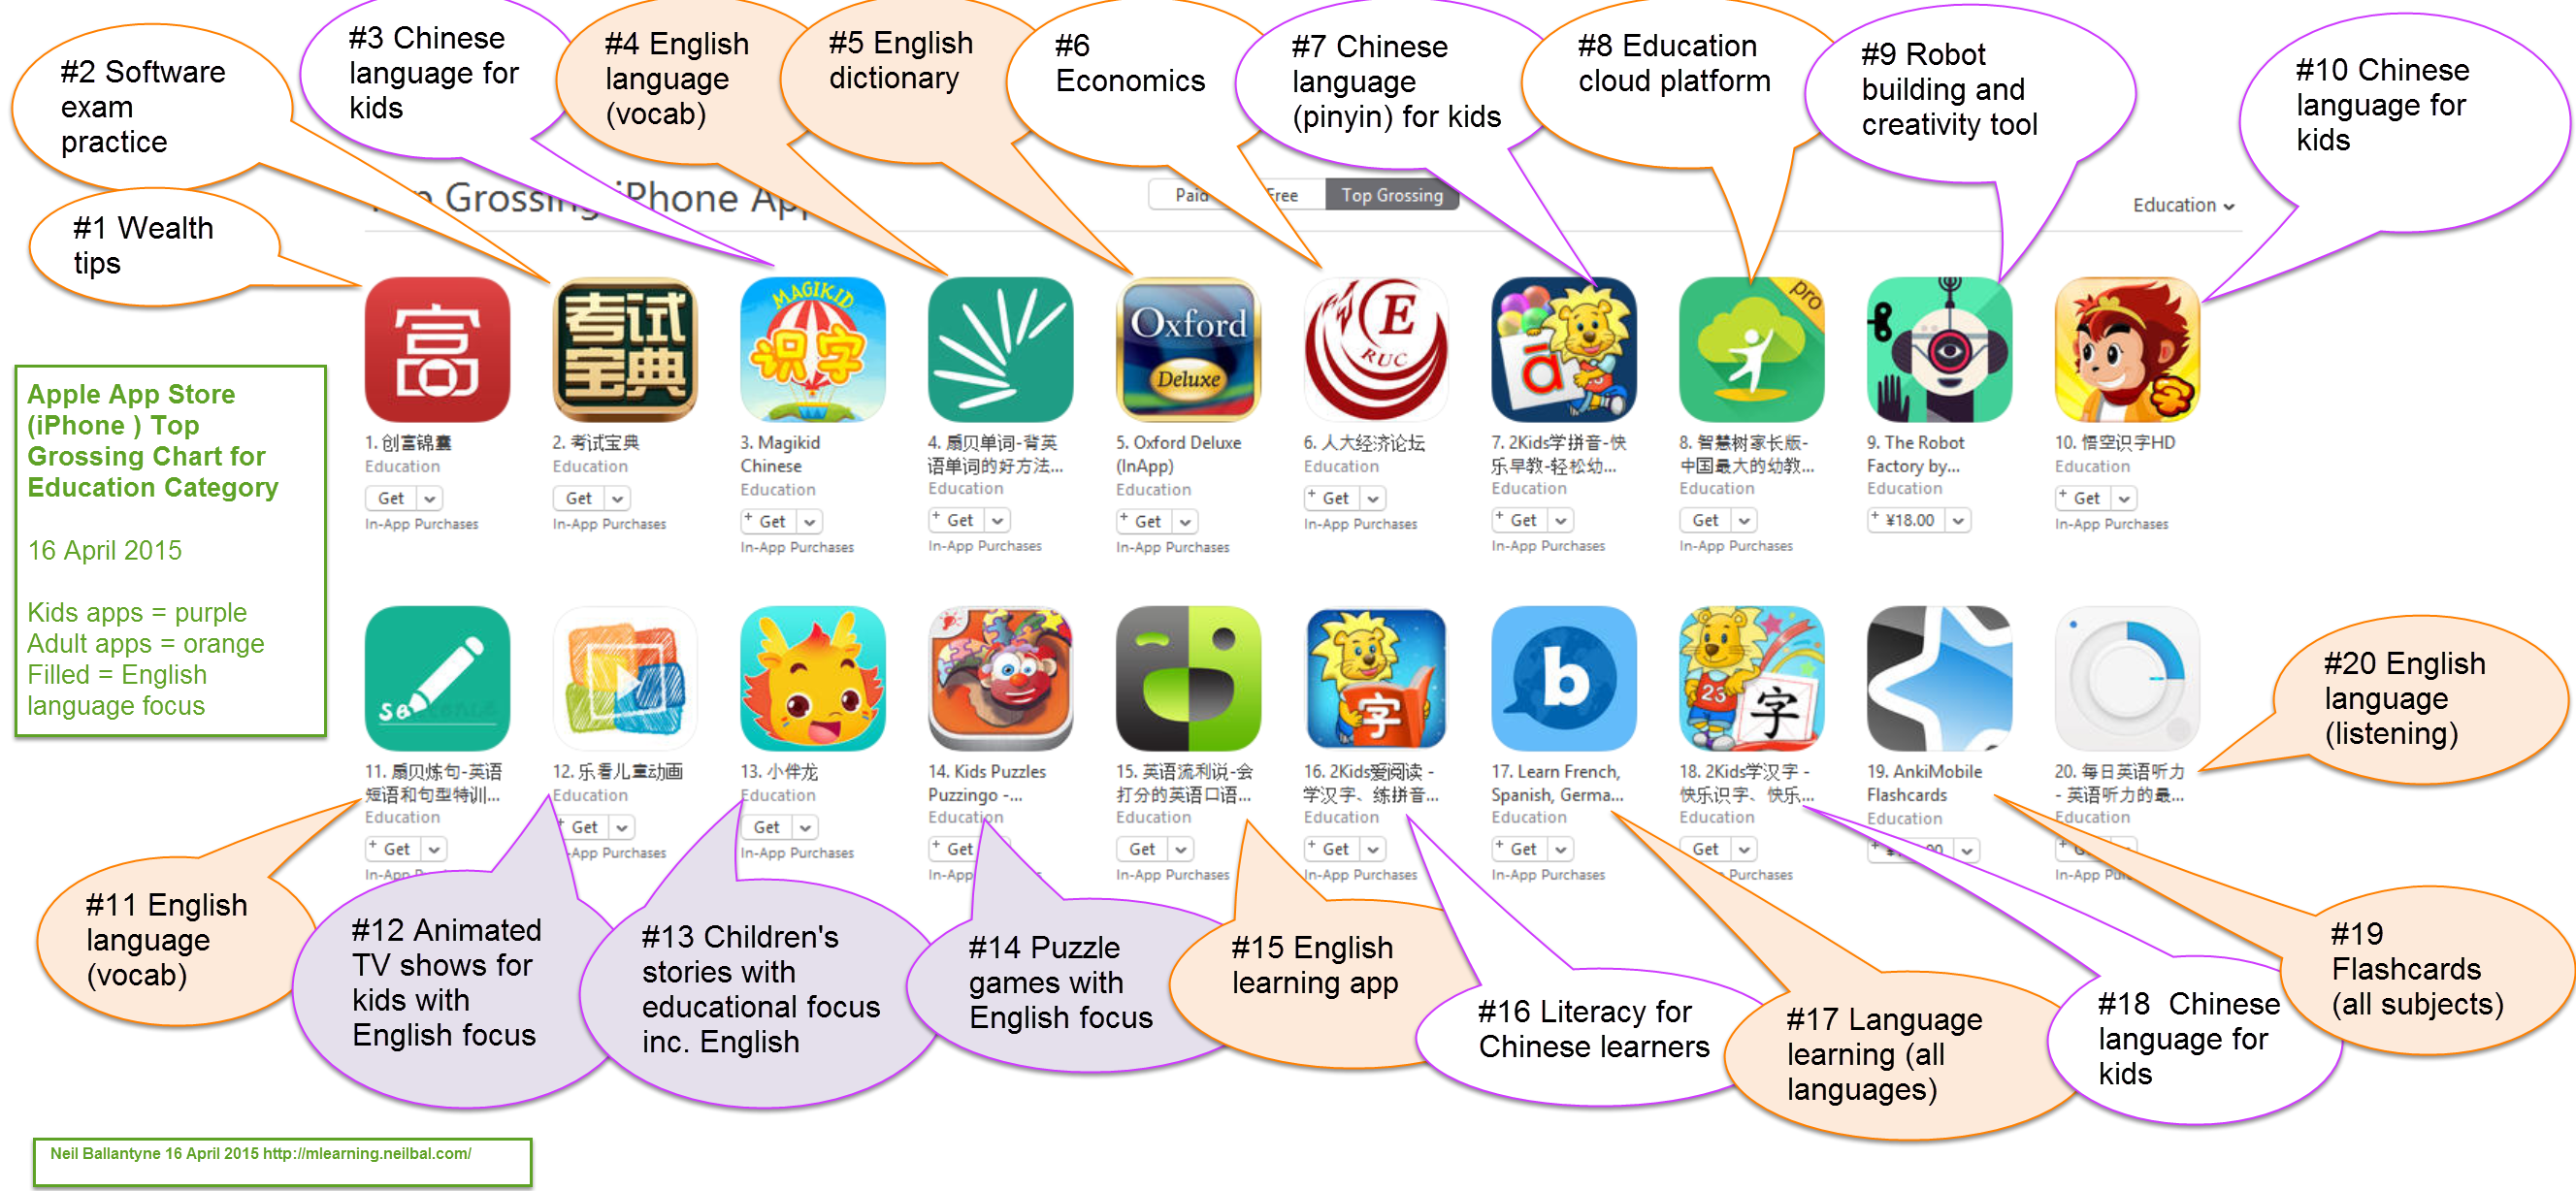 musings on mlearning, apps and EFL | A snapshot of the Chinese